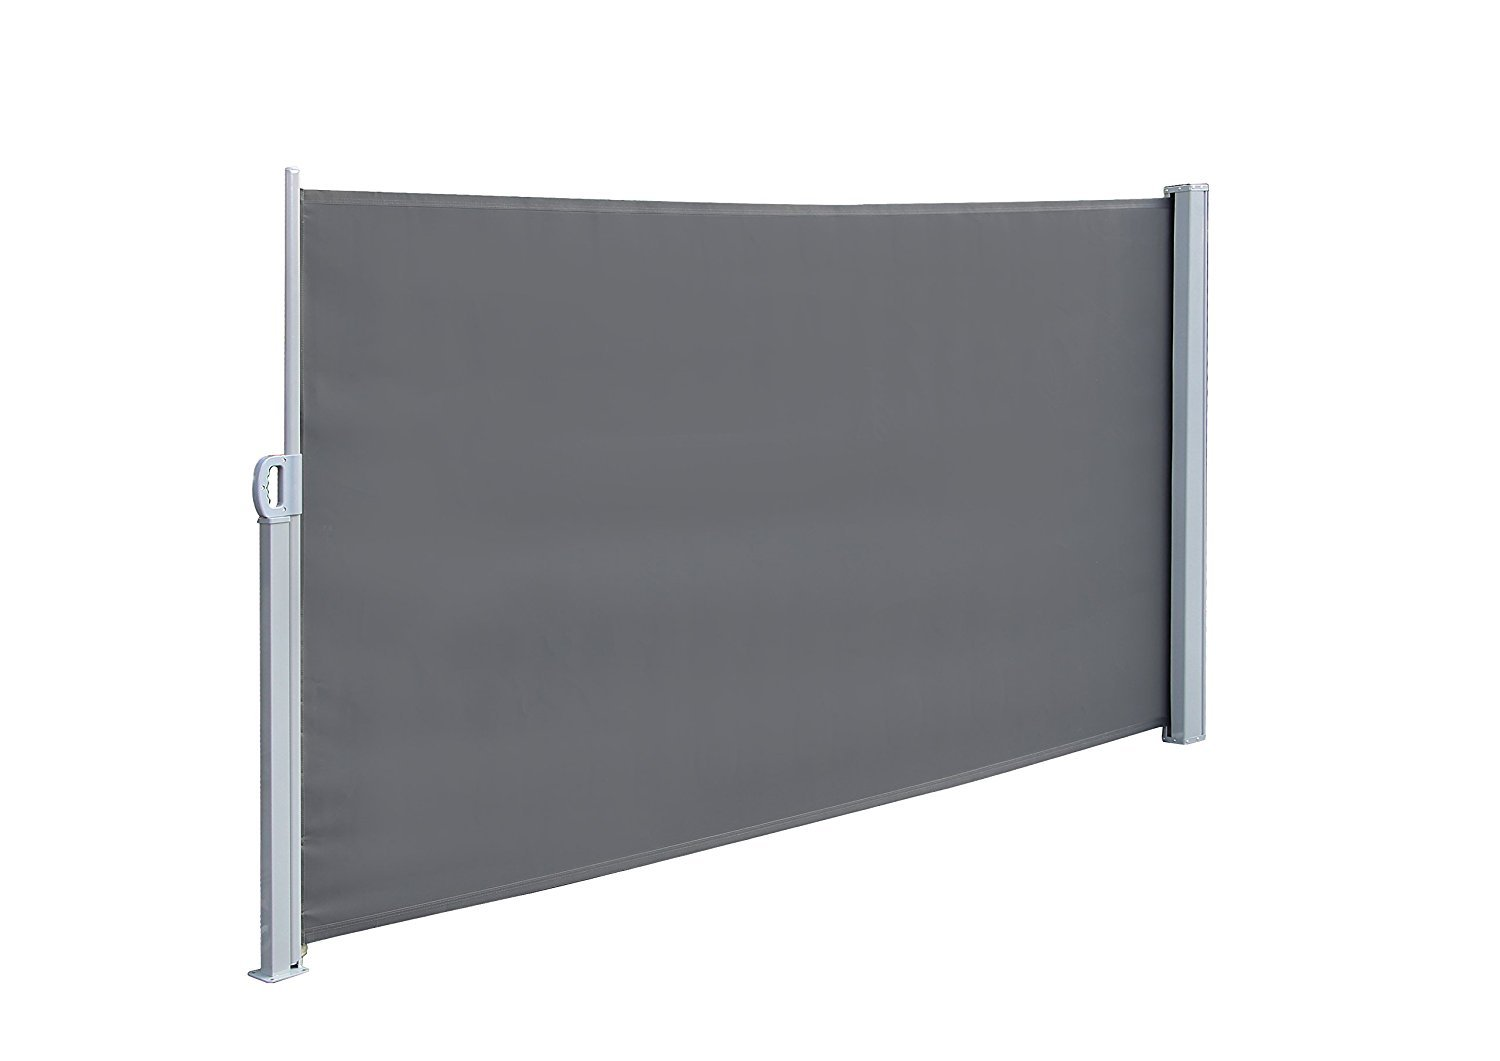 SimLife Retractable Side Awning Privacy Screen Shade Patio Balcony Outdoor Steel Support Pole, Gray